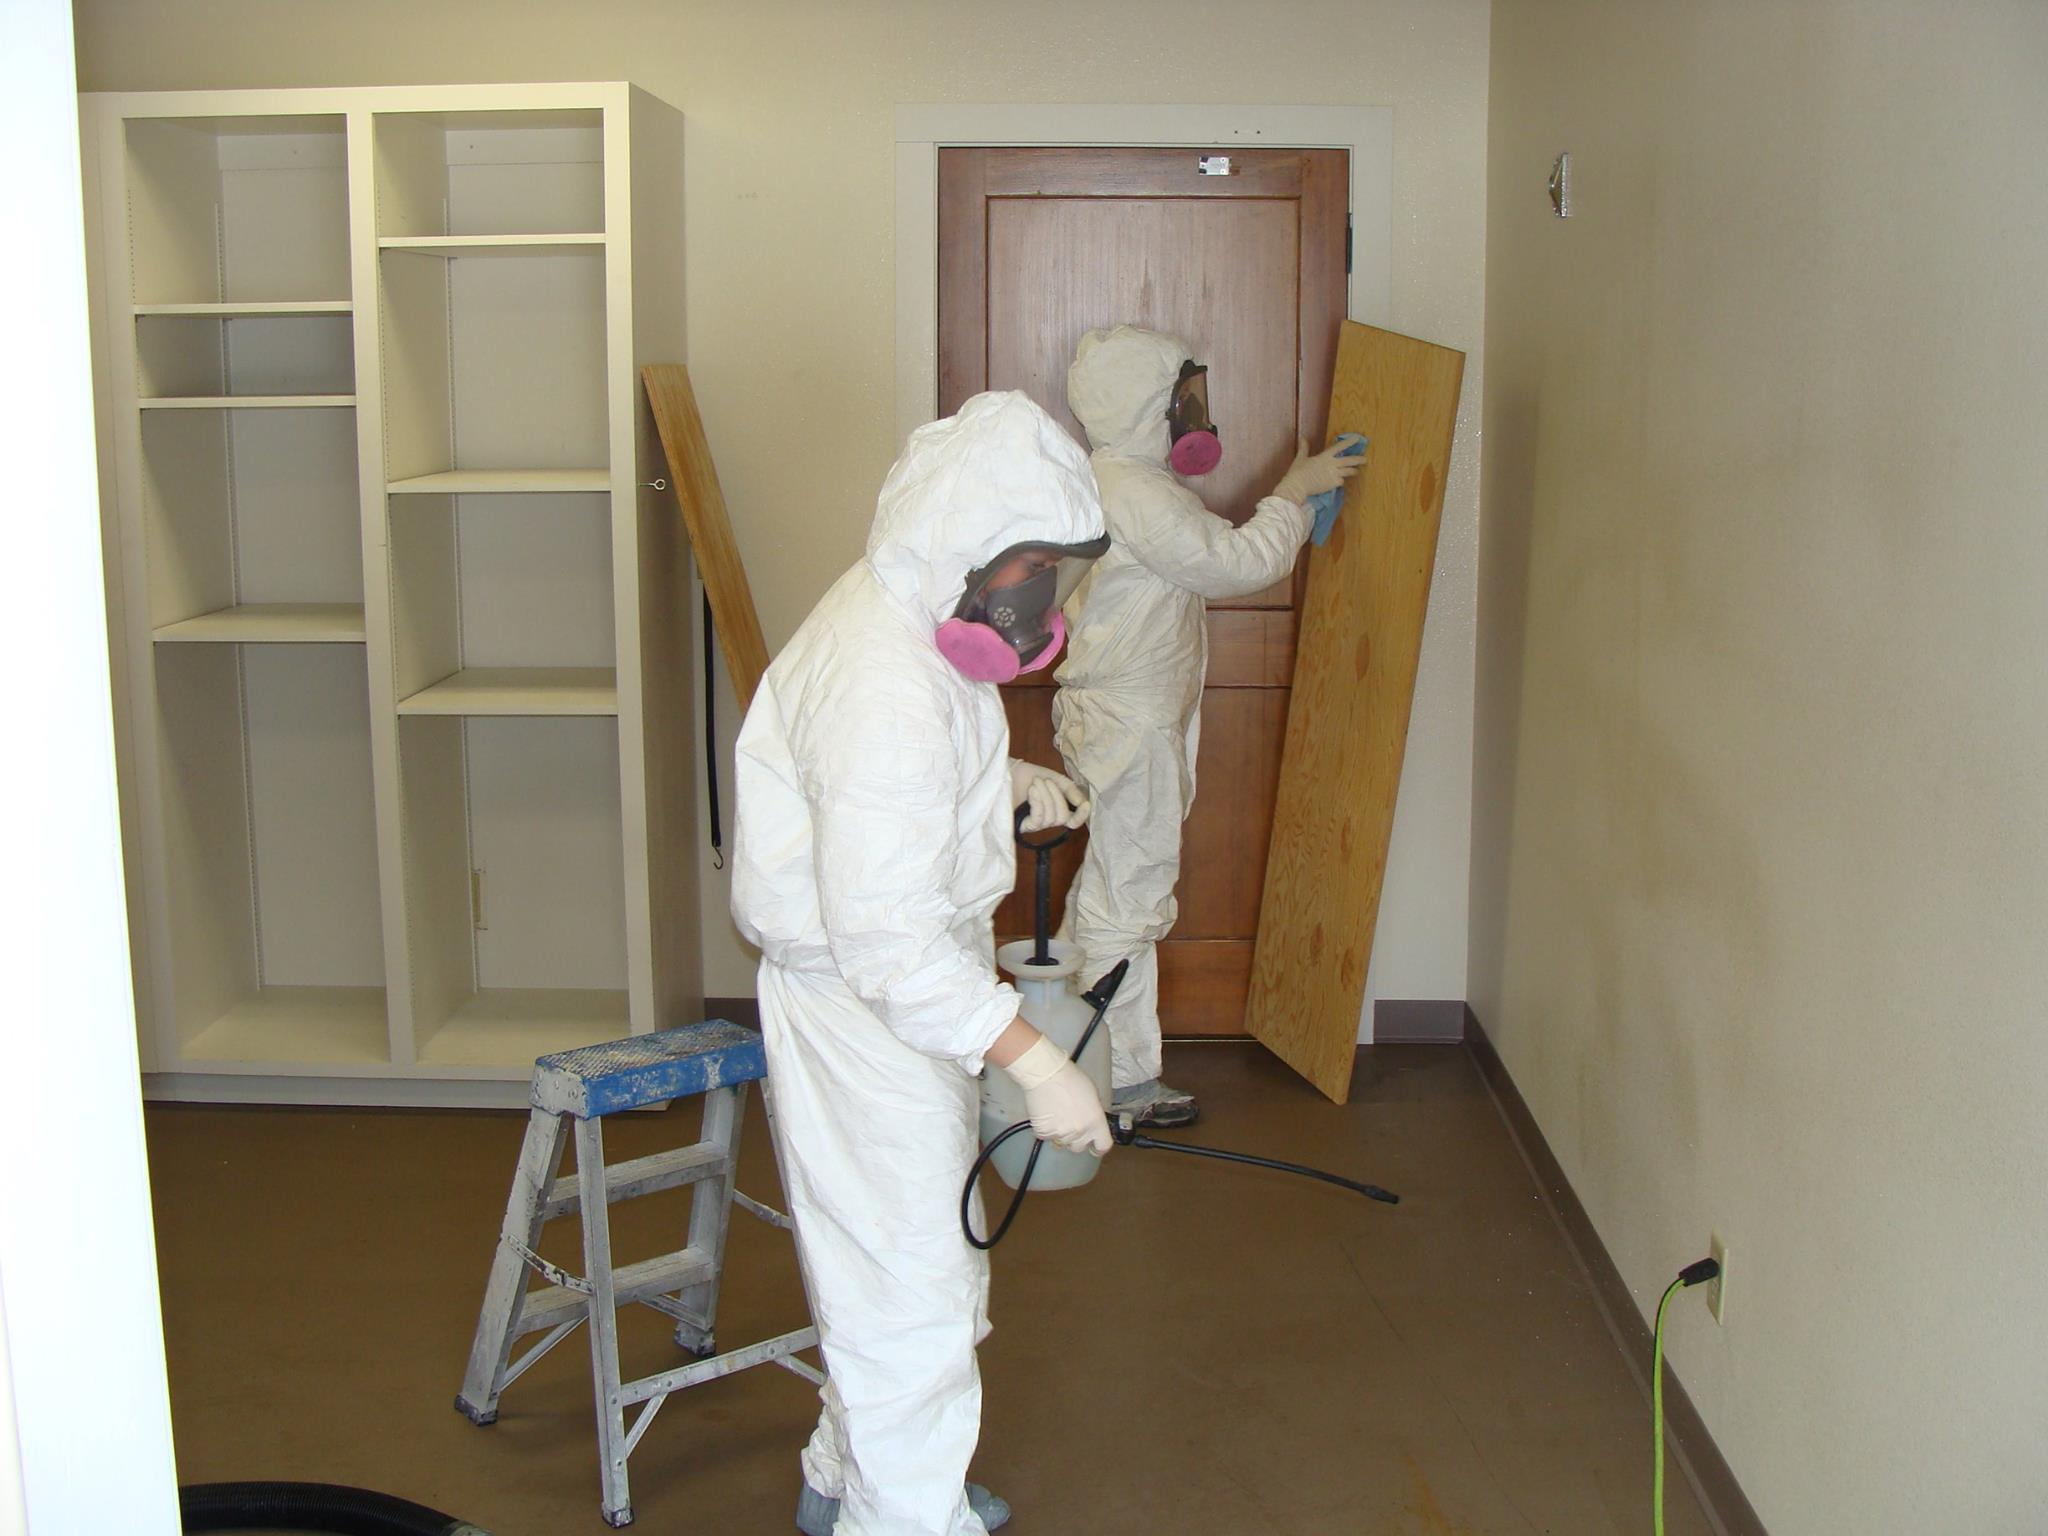 Sanatizing & disinfecting mold